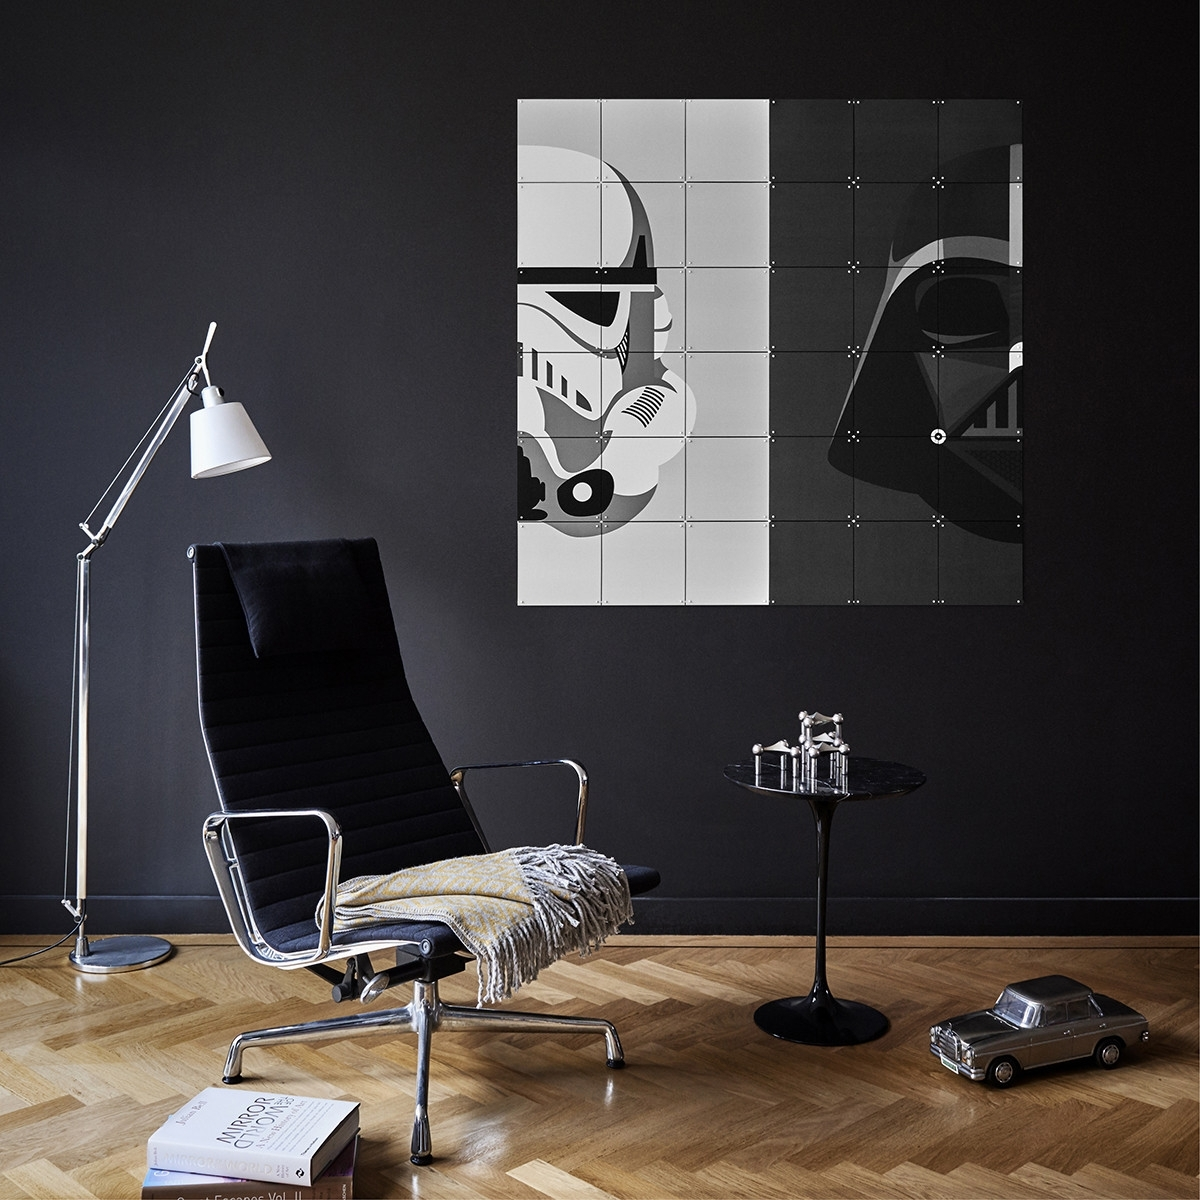 Star Wars Stormtrooper/darth Vader Wall Art Panels – Tgi Found It With Recent Star Wars Wall Art (View 12 of 15)